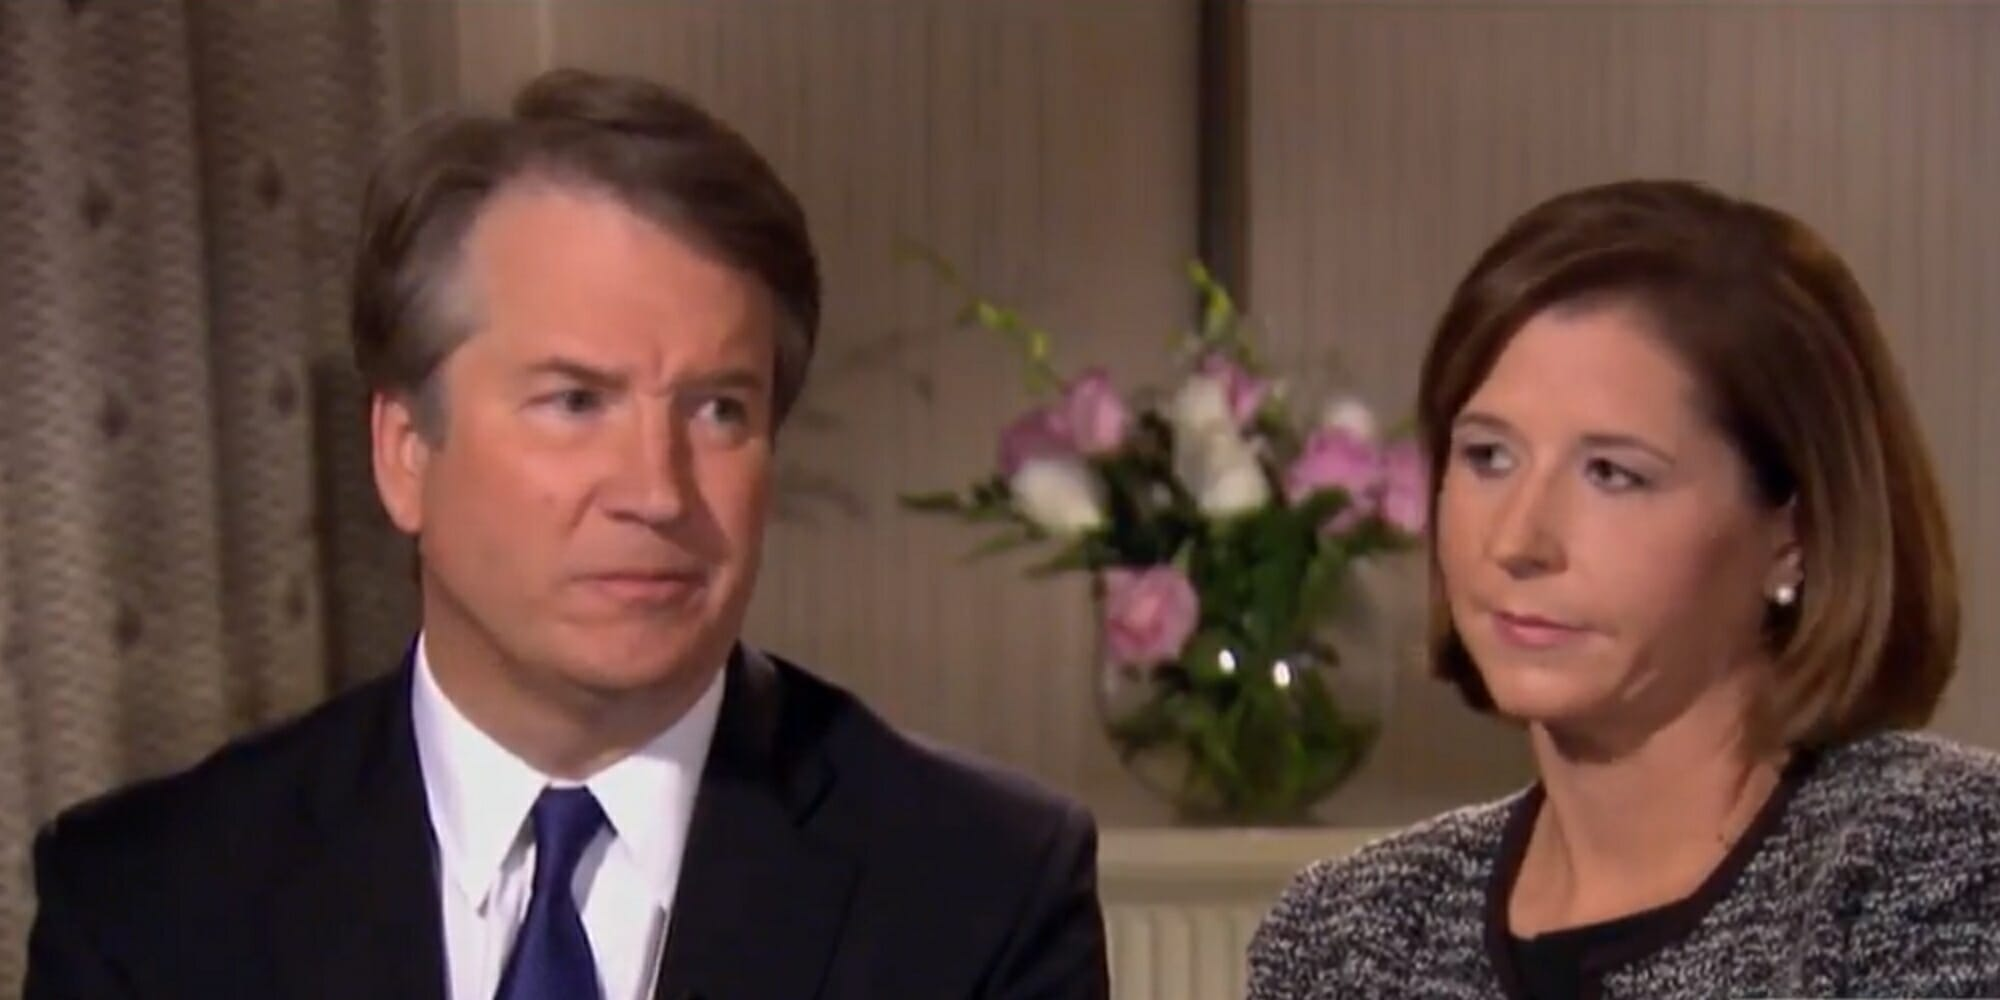 Brett Kavanaugh is under intense scrutiny for interrupting his wife amid sexual assault accusations.